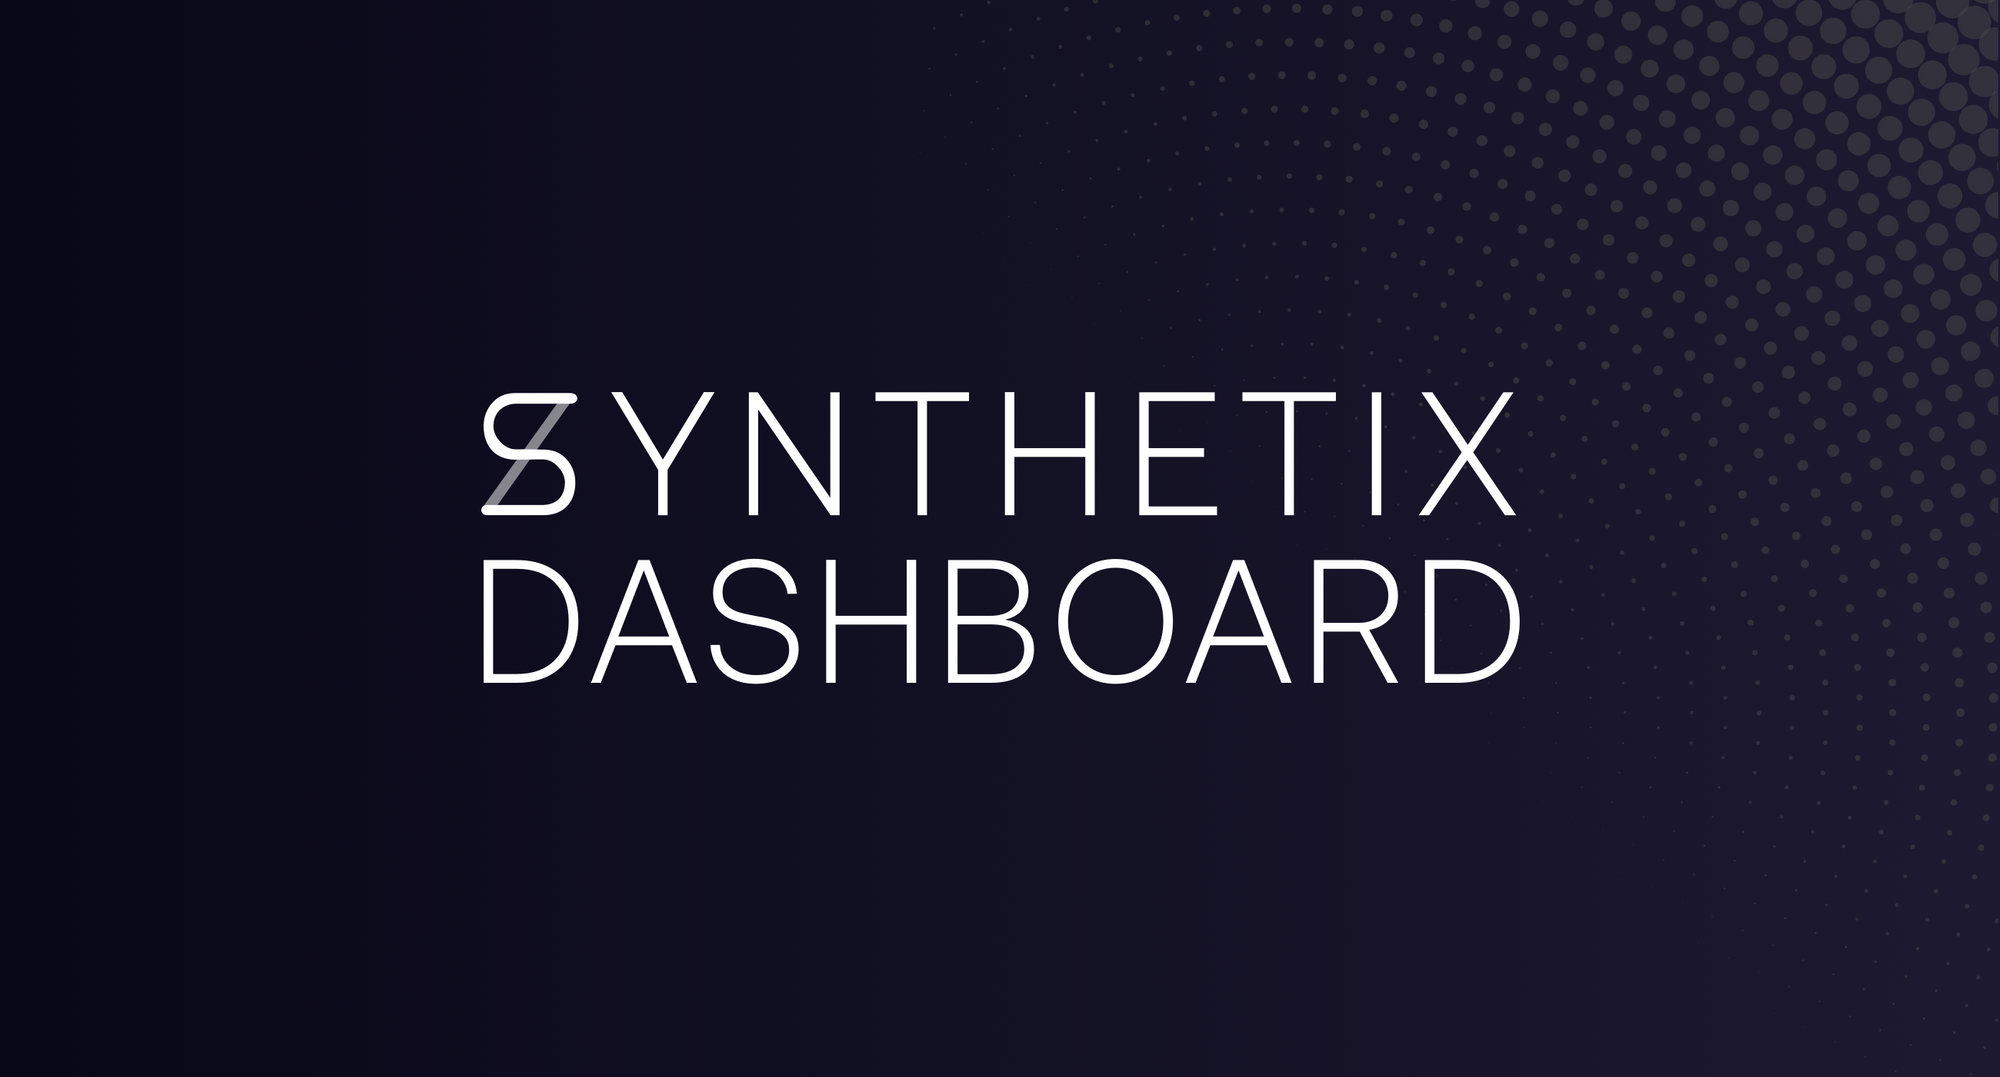 The new Synthetix Dashboard is now live!